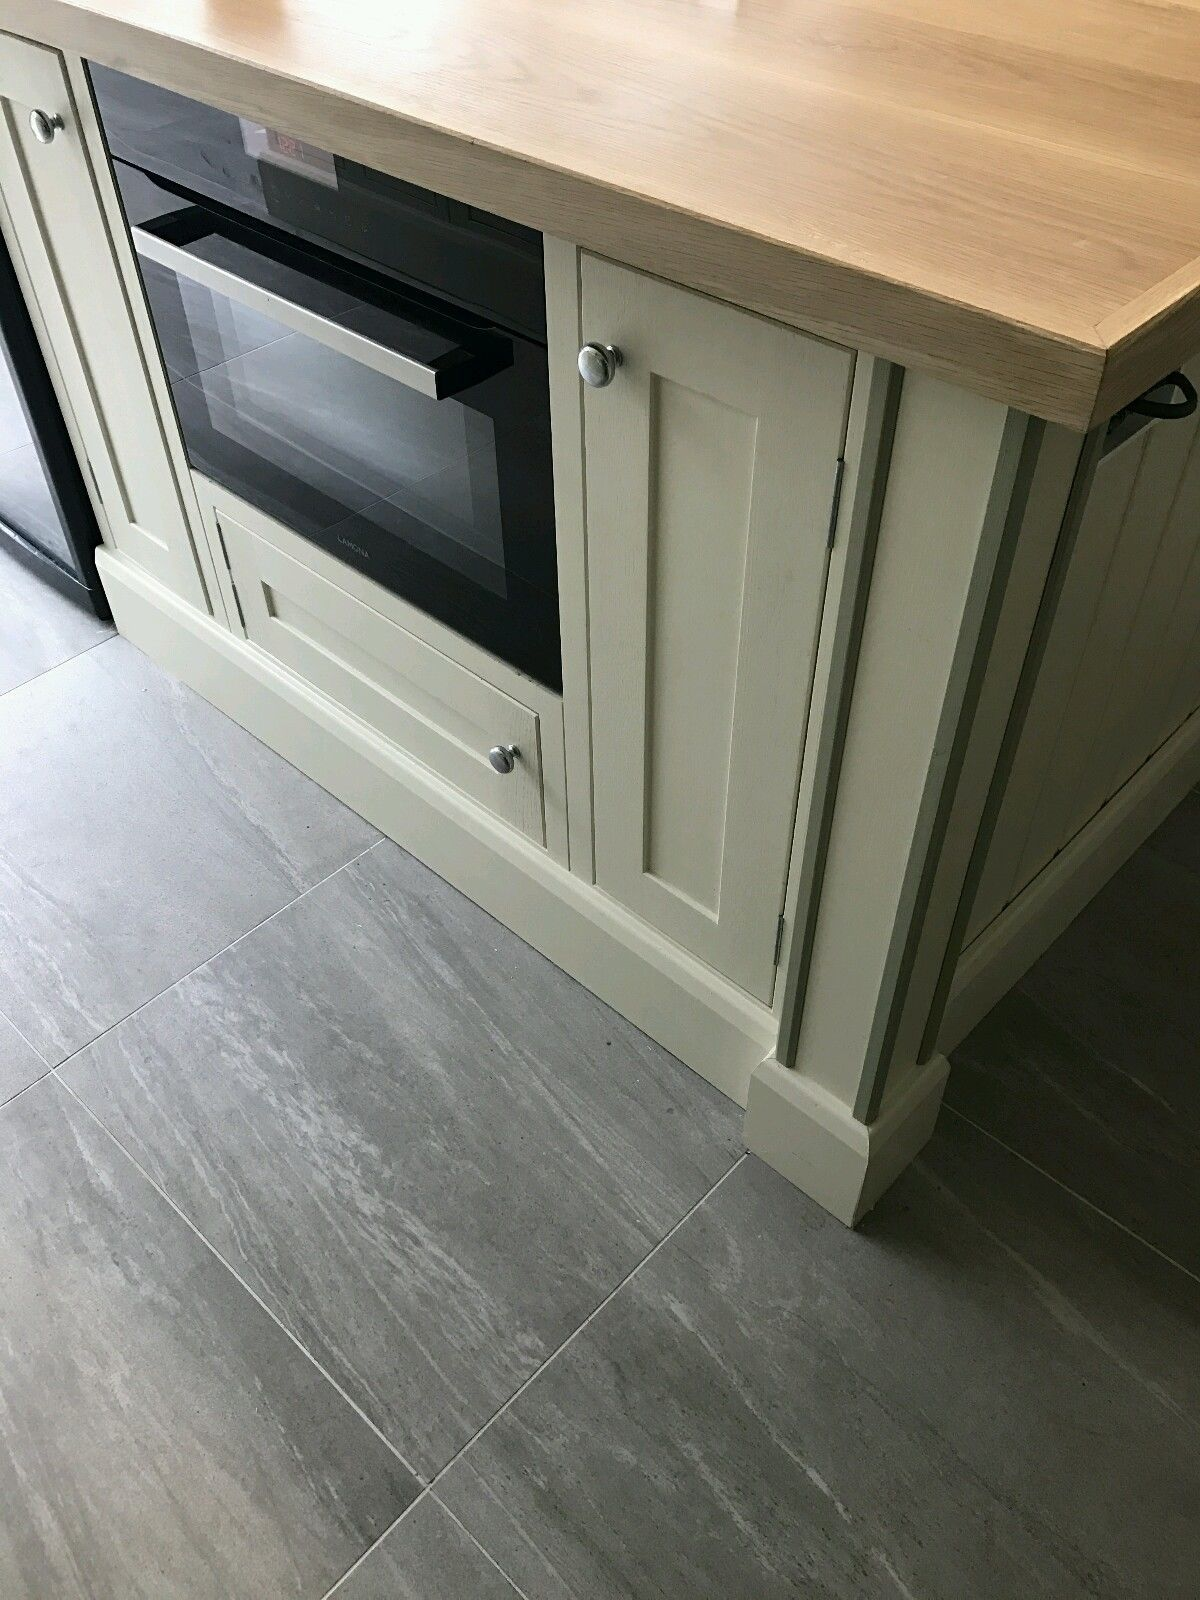 Solid Oak Handmade Kitchen Cabinets Doors In Frame Kitchen